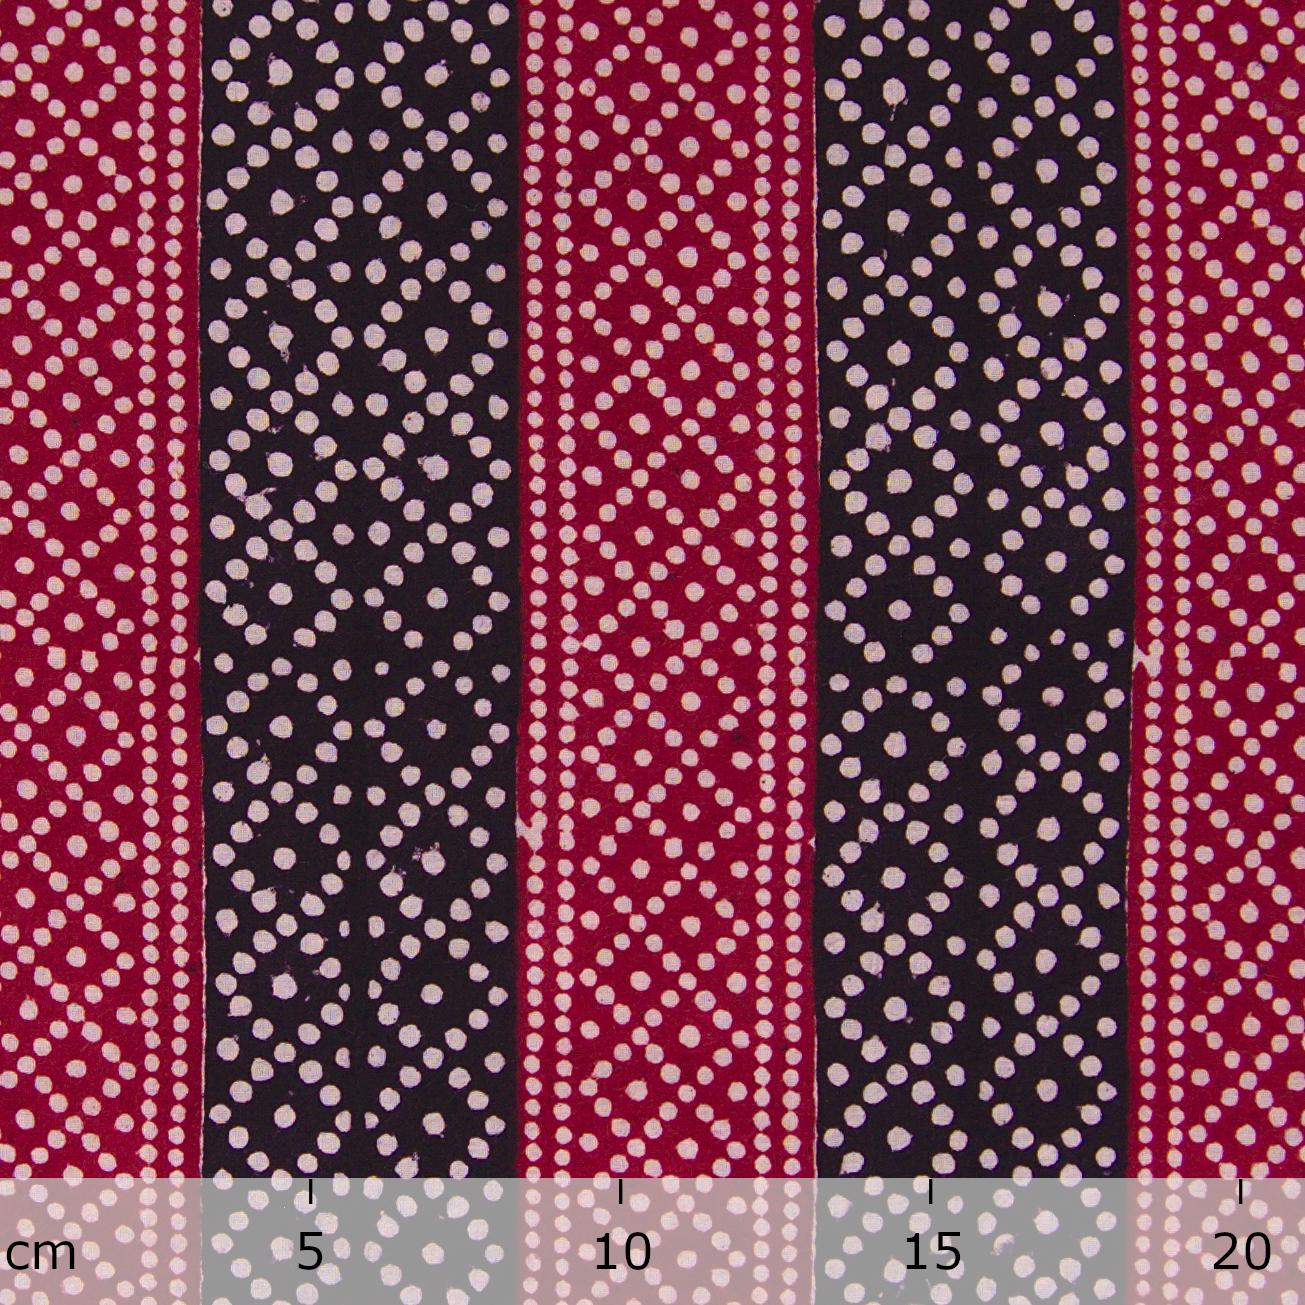 100% Block-Printed Cotton Fabric From India - Pixels Design - Iron Rust Black & Alizarin Red Dyes - Ruler - Live